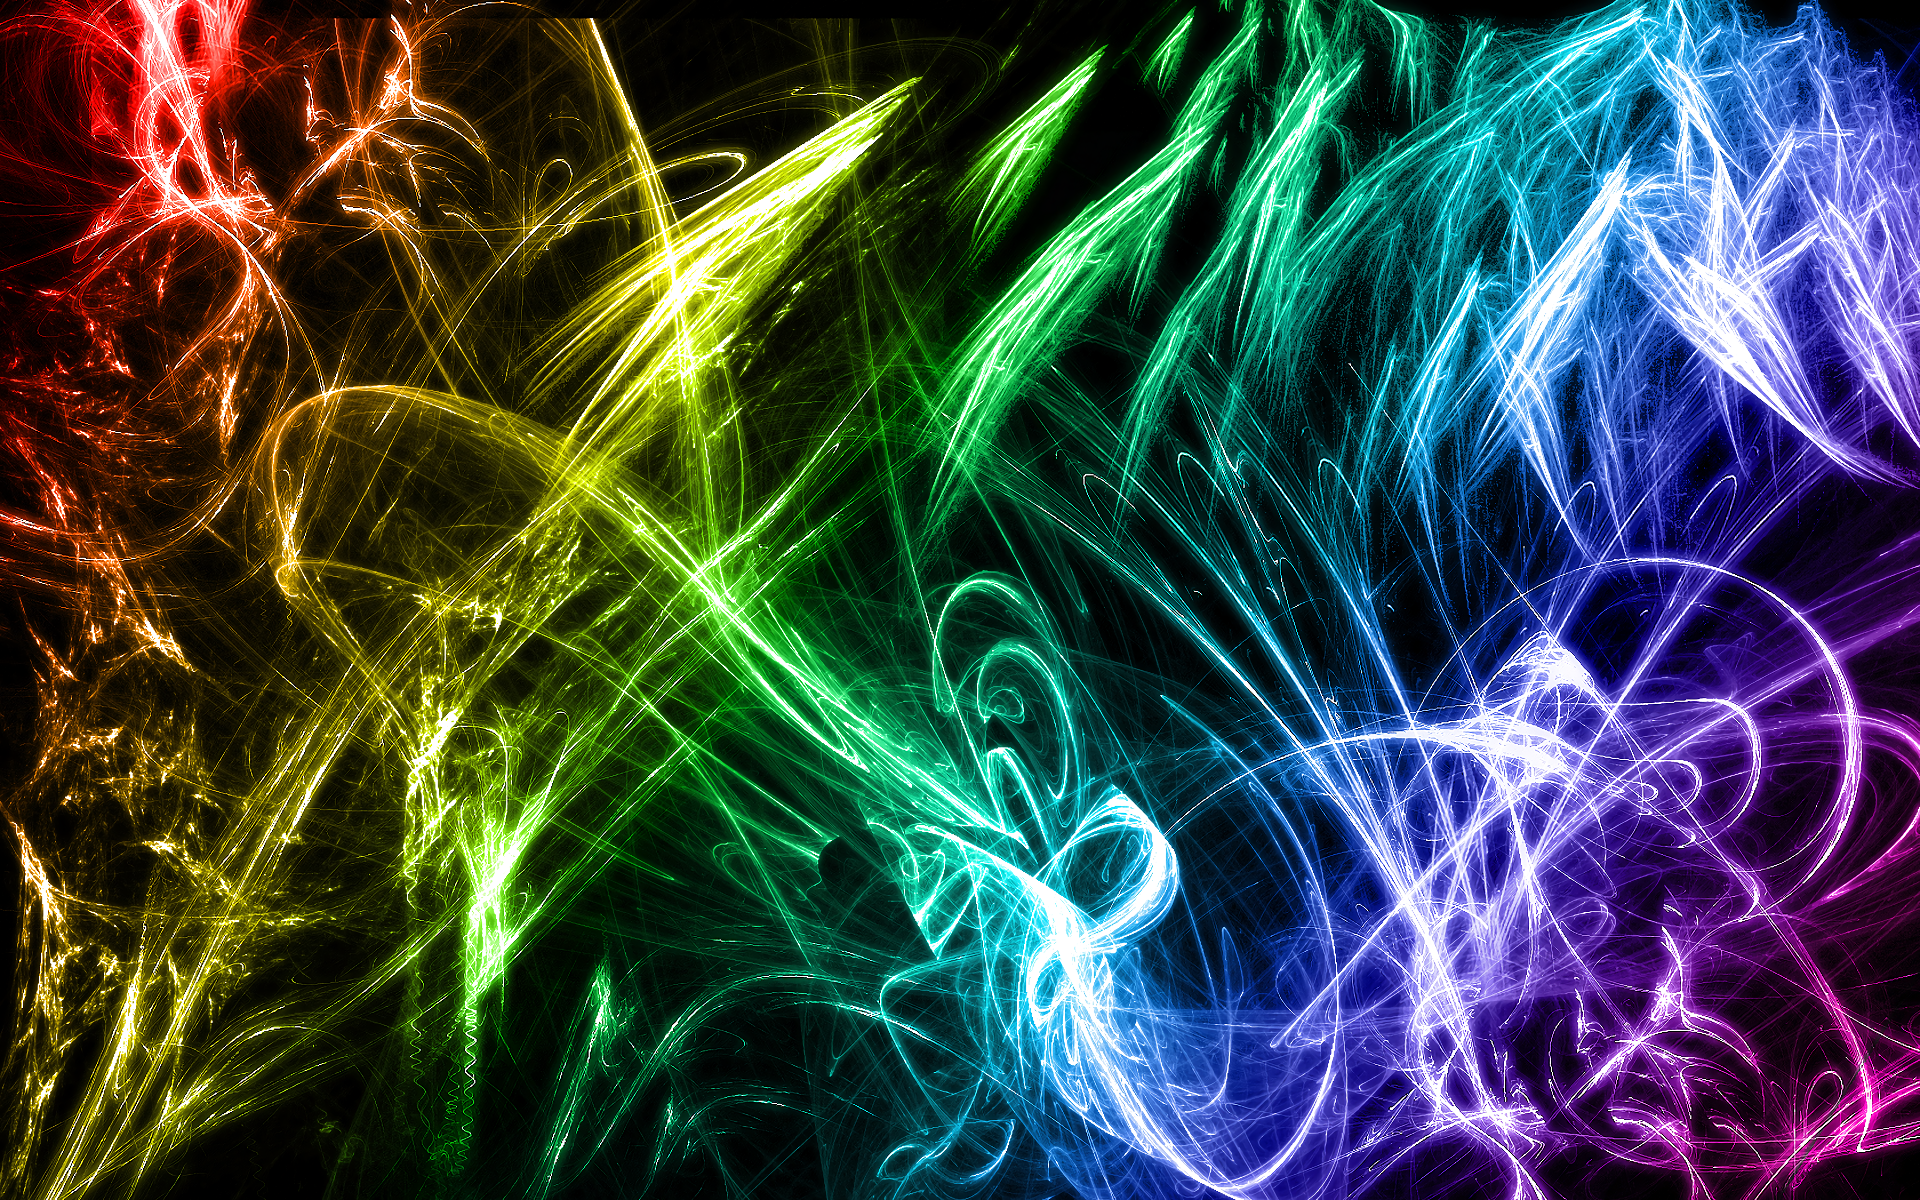 Cool abstract photo